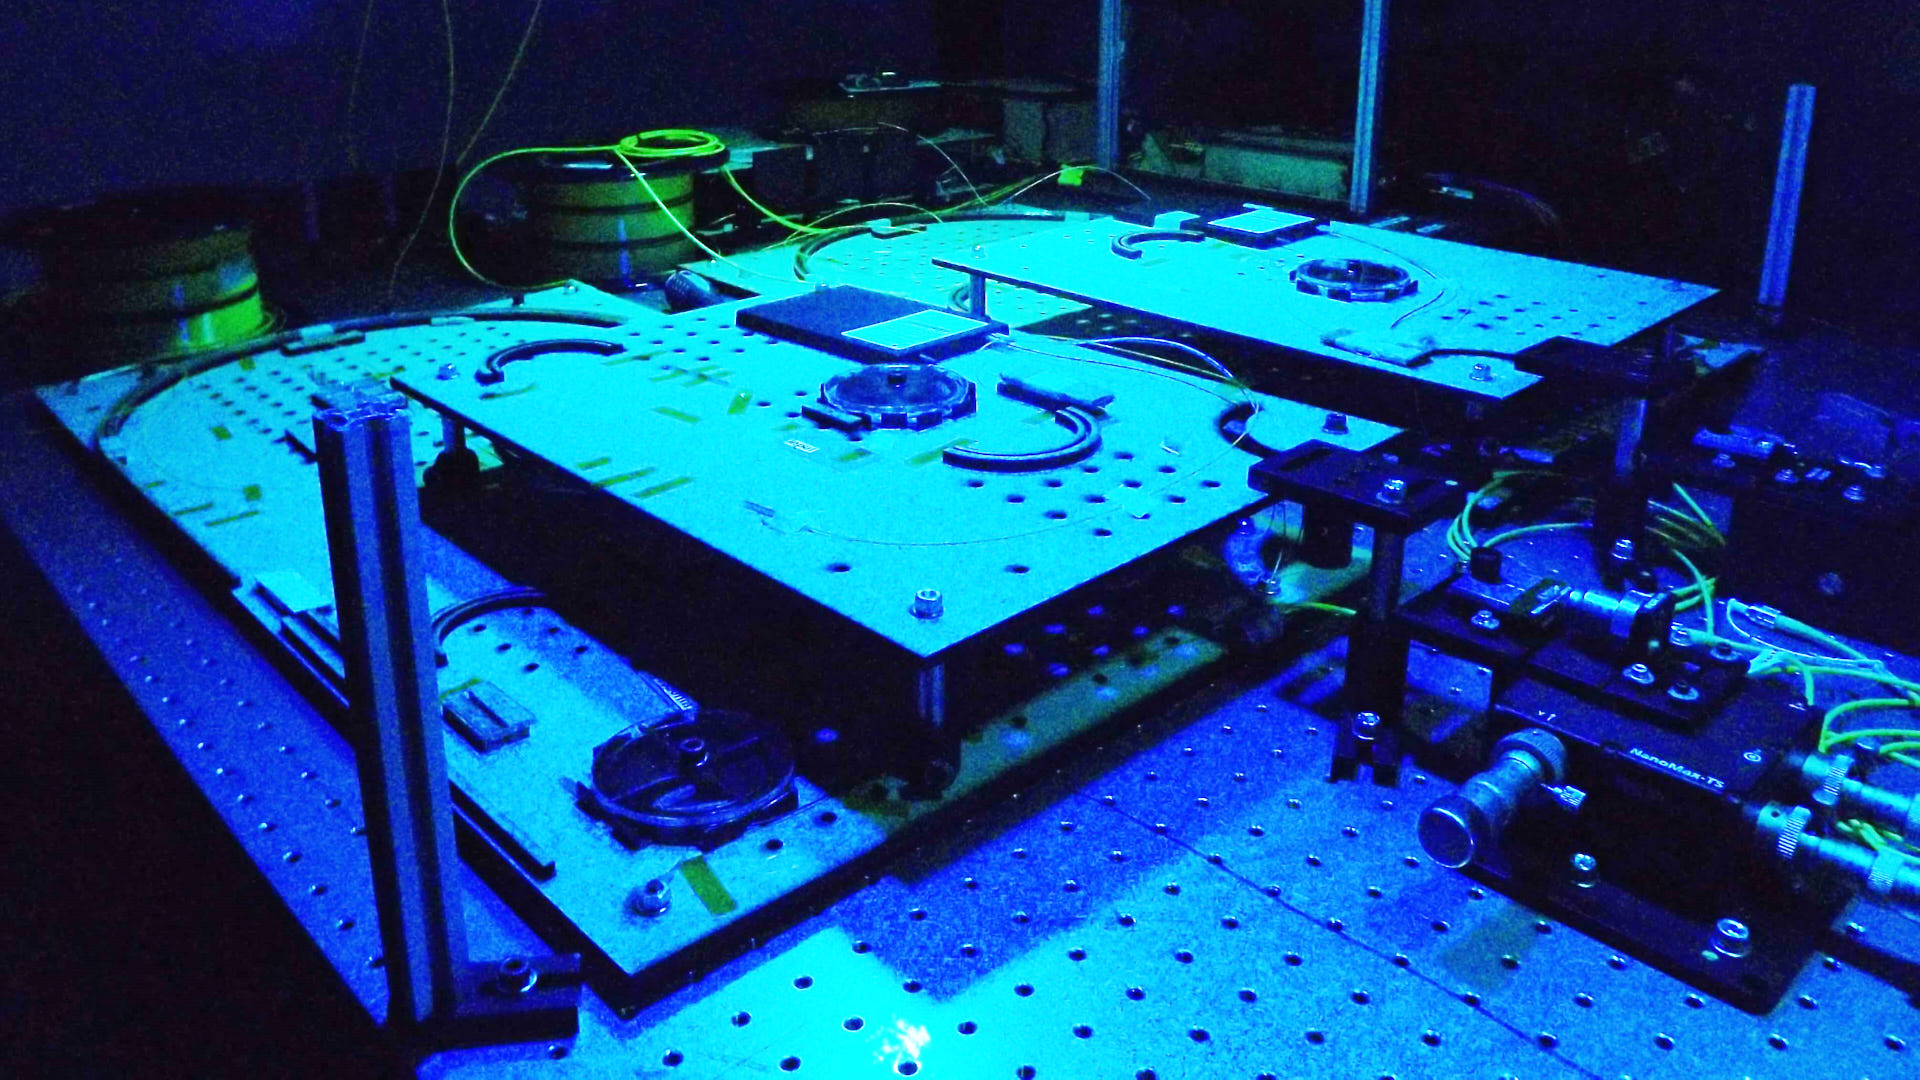 Photograph of a single photon source built with optical fibre